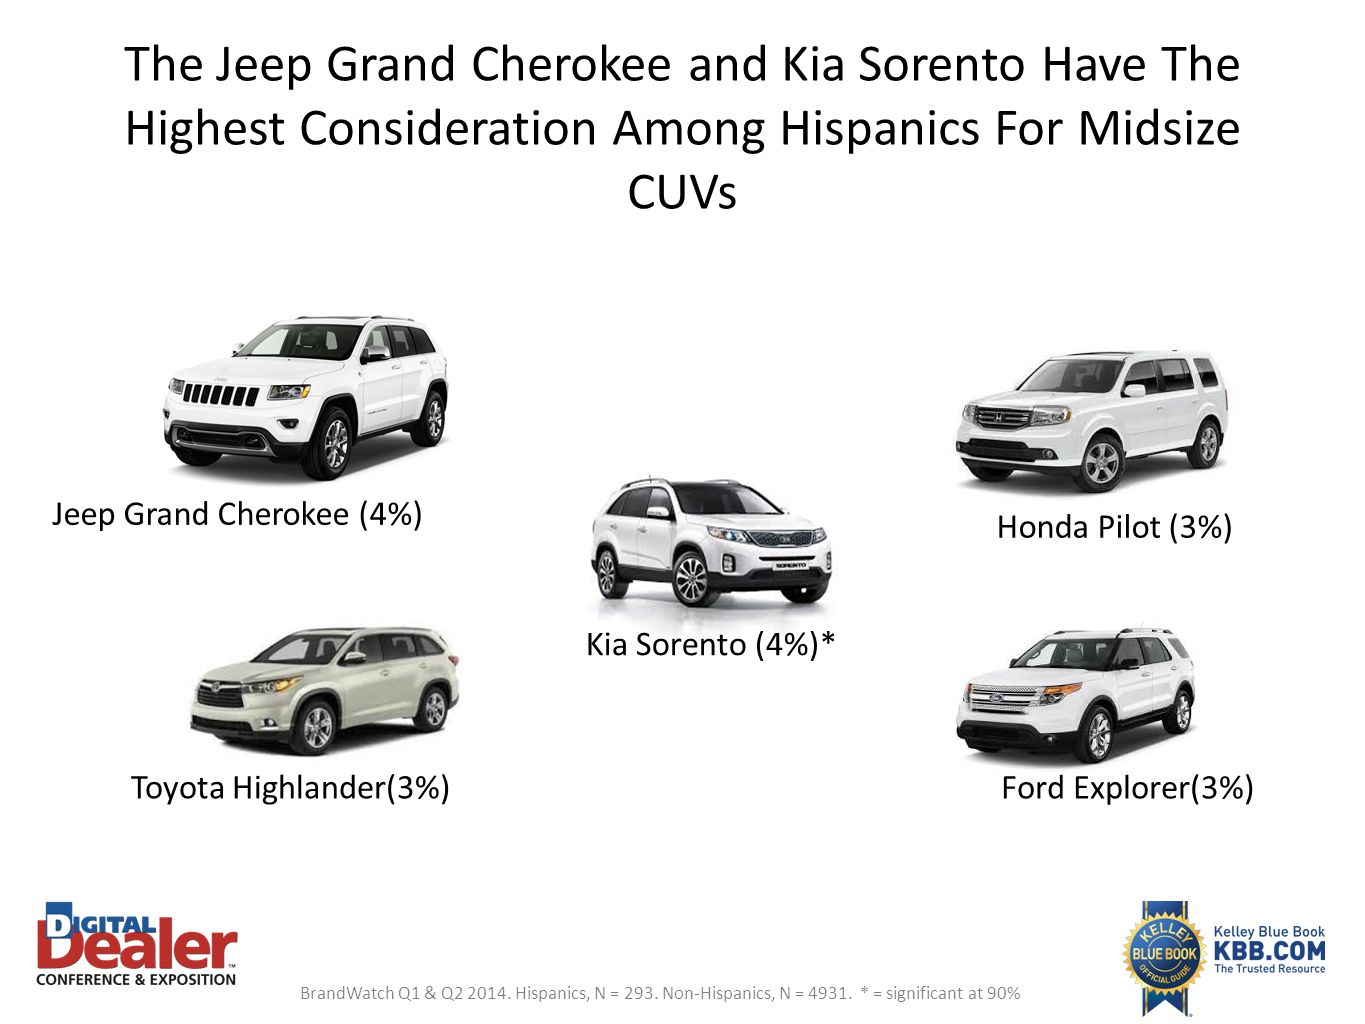 The Jeep Grand Cherokee and Kia Sorento Have The Highest Consideration Among Hispanics For Midsize CUVs